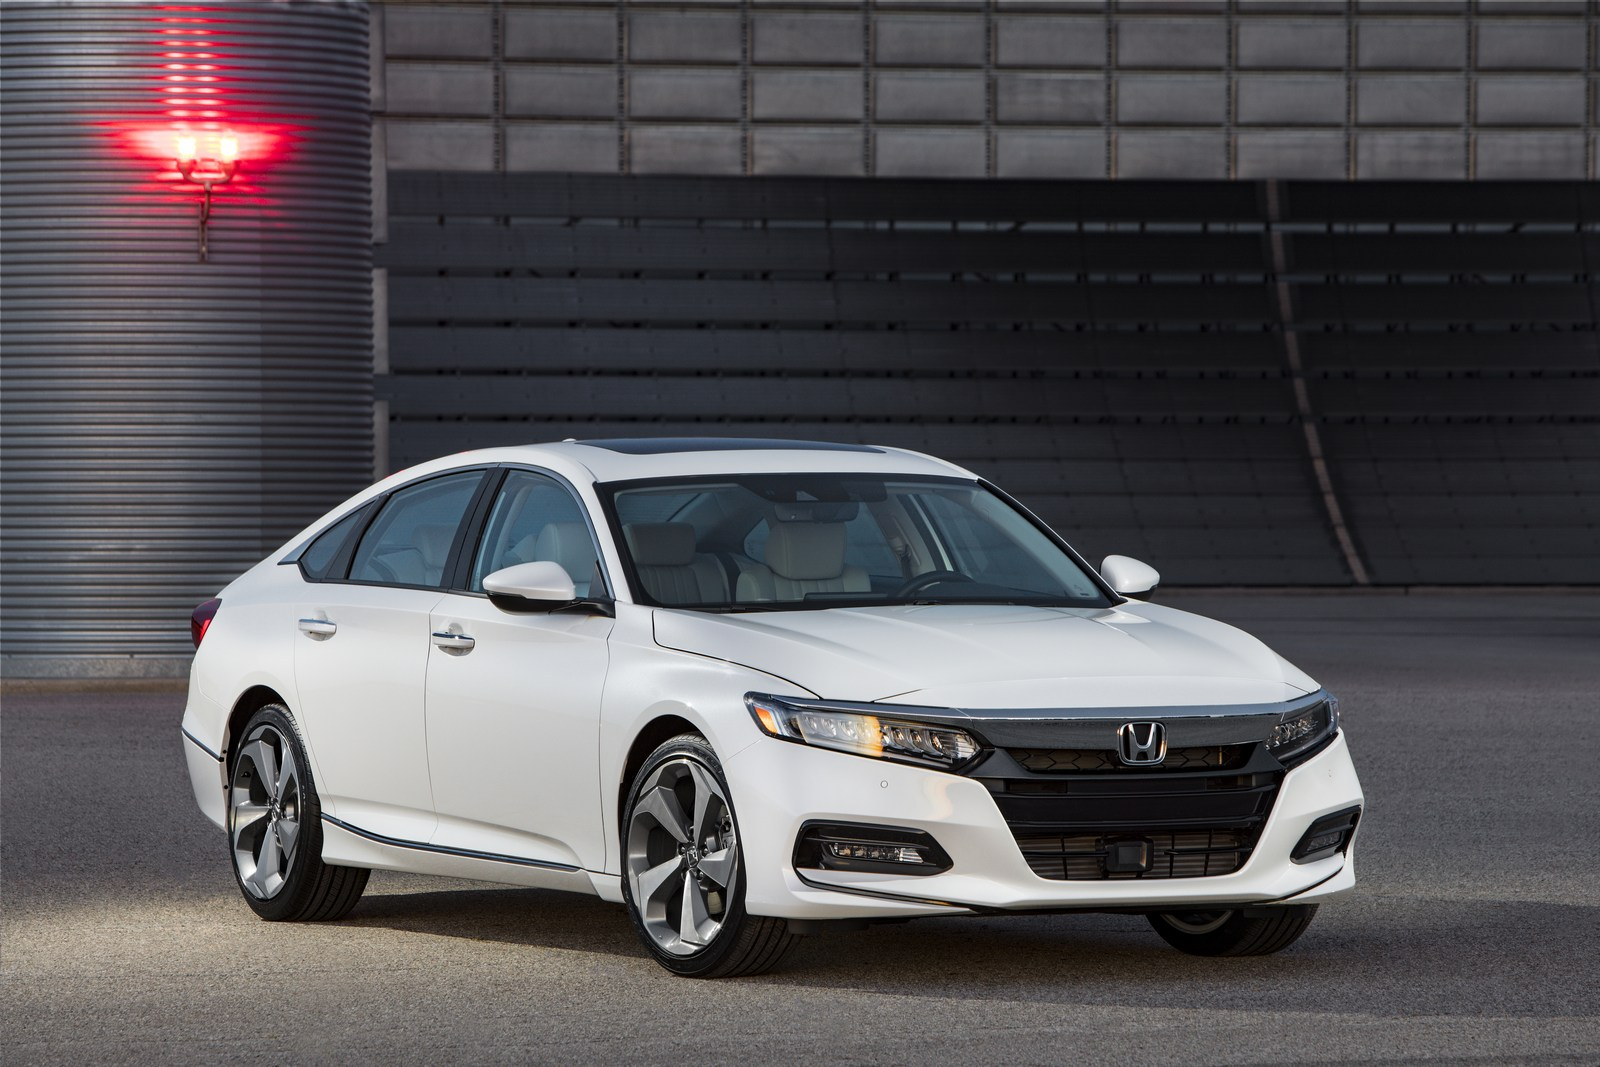 Honda Accord 2018 (1)